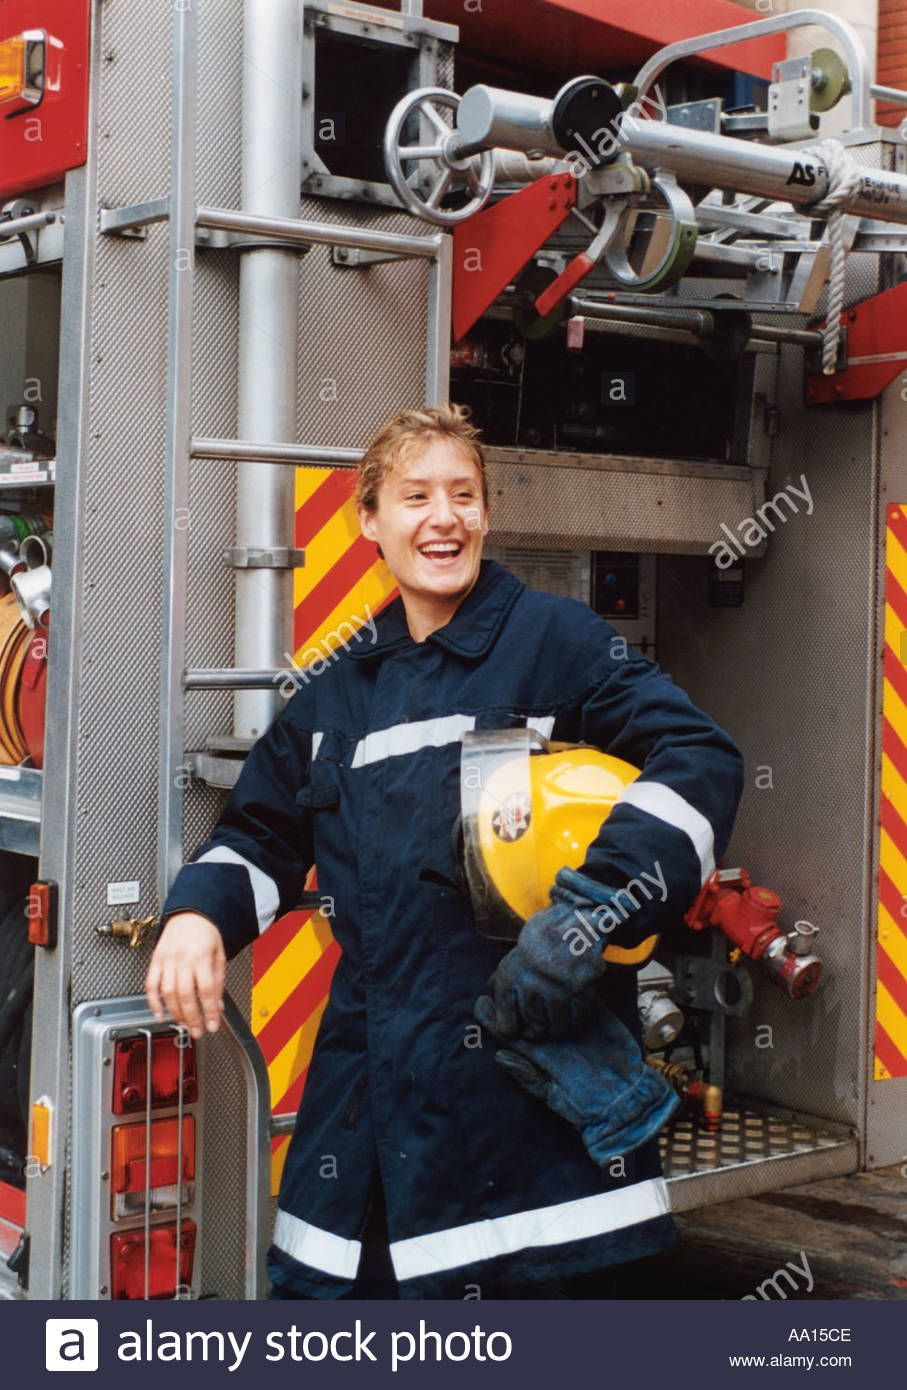 Female firefighter standing next to fire engine in uniform